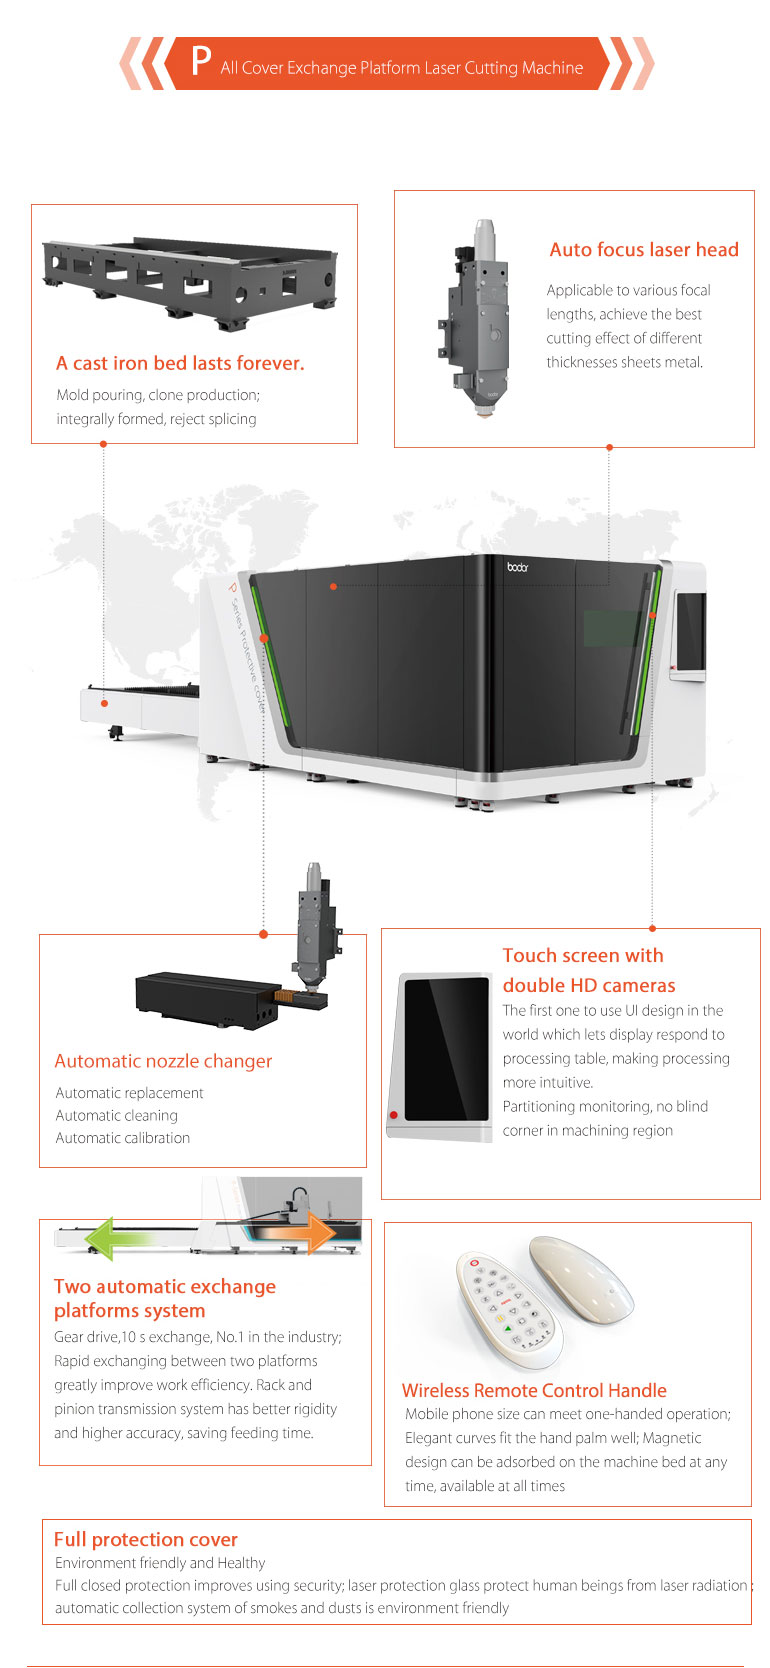 Bodor Fiber Laser Cutting Machine Series P All Cover with Raytools Laser Head